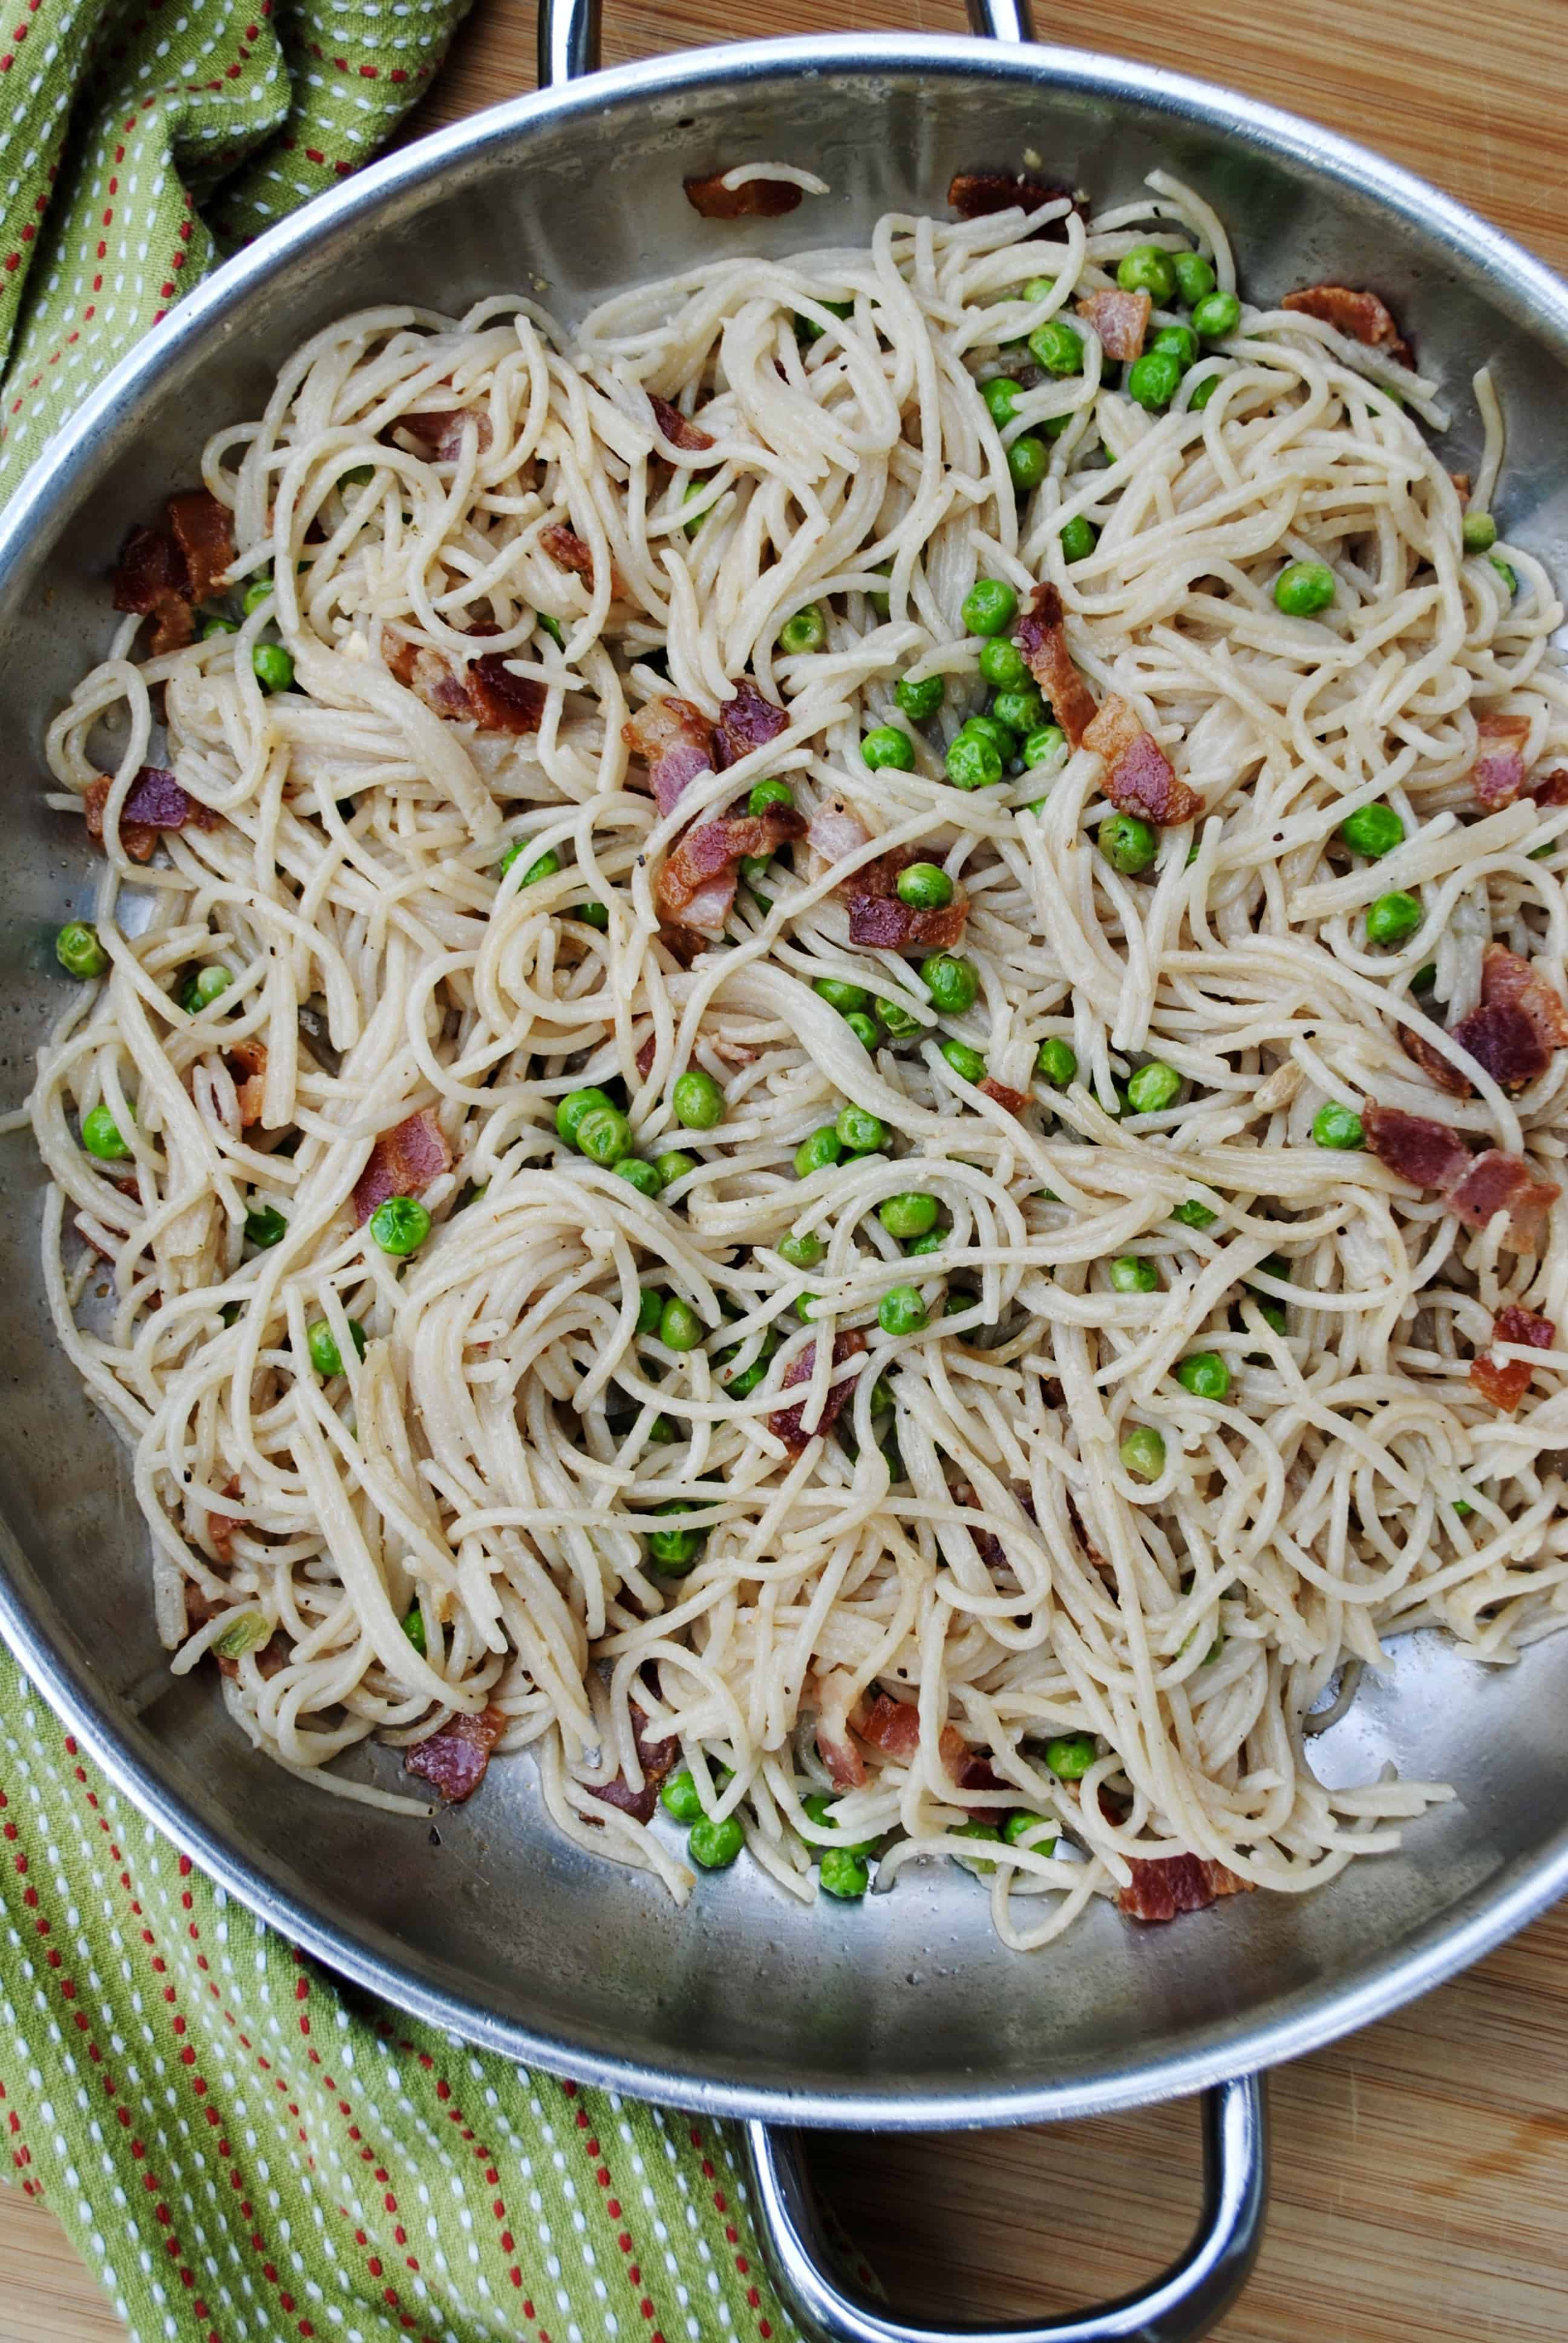 Pasta with bacon and peas. A simple inexpensive meal.